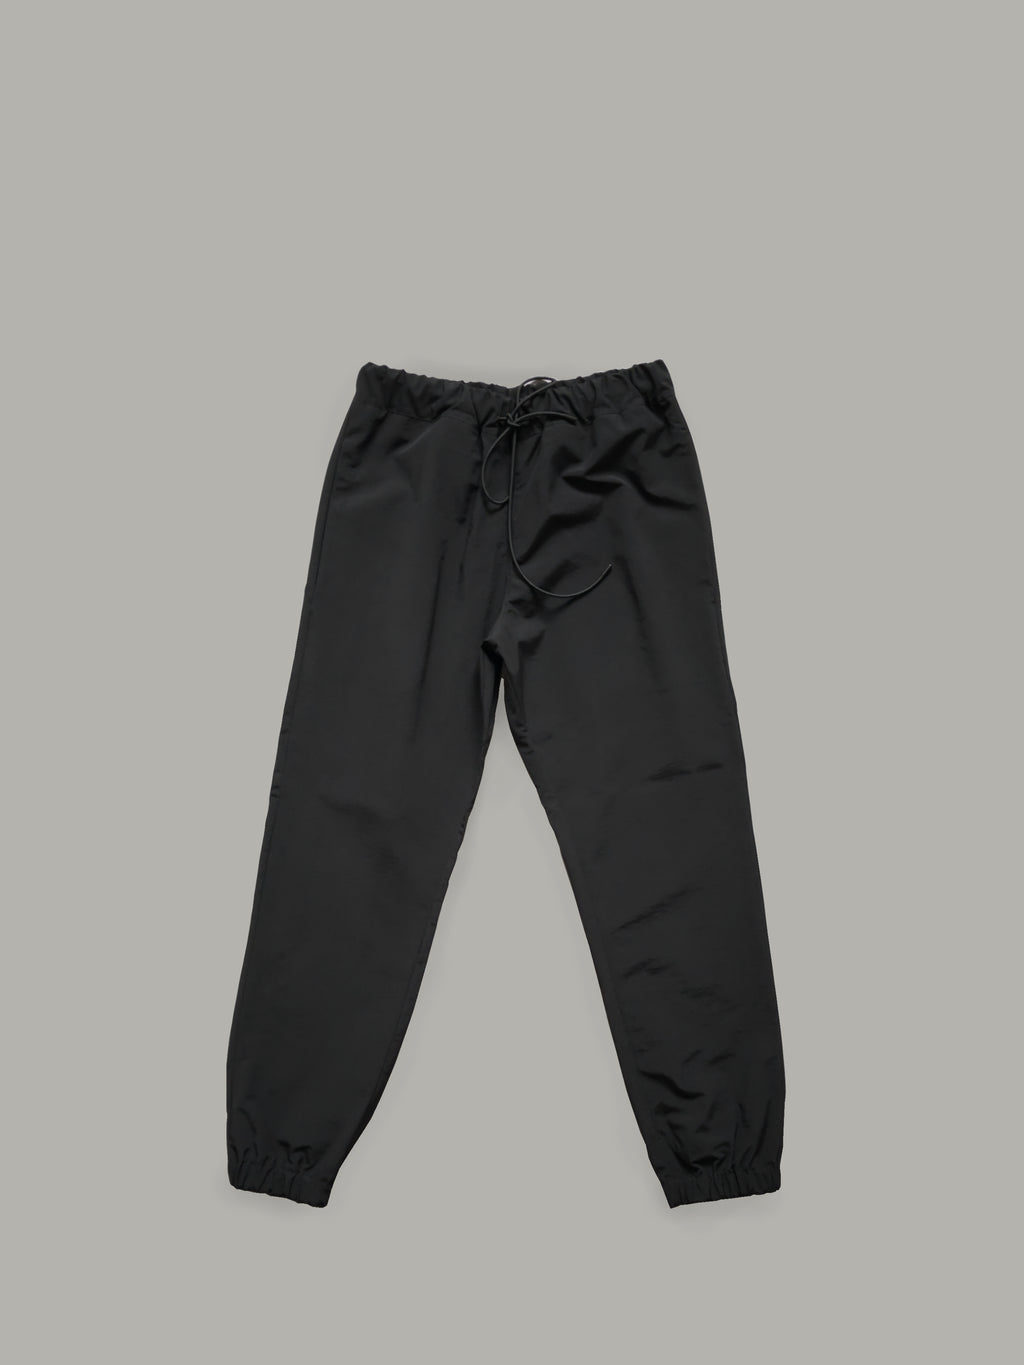 WATER RESISTANT NYLON TROUSERS WITH ADJUSTABLE WAISTBAND